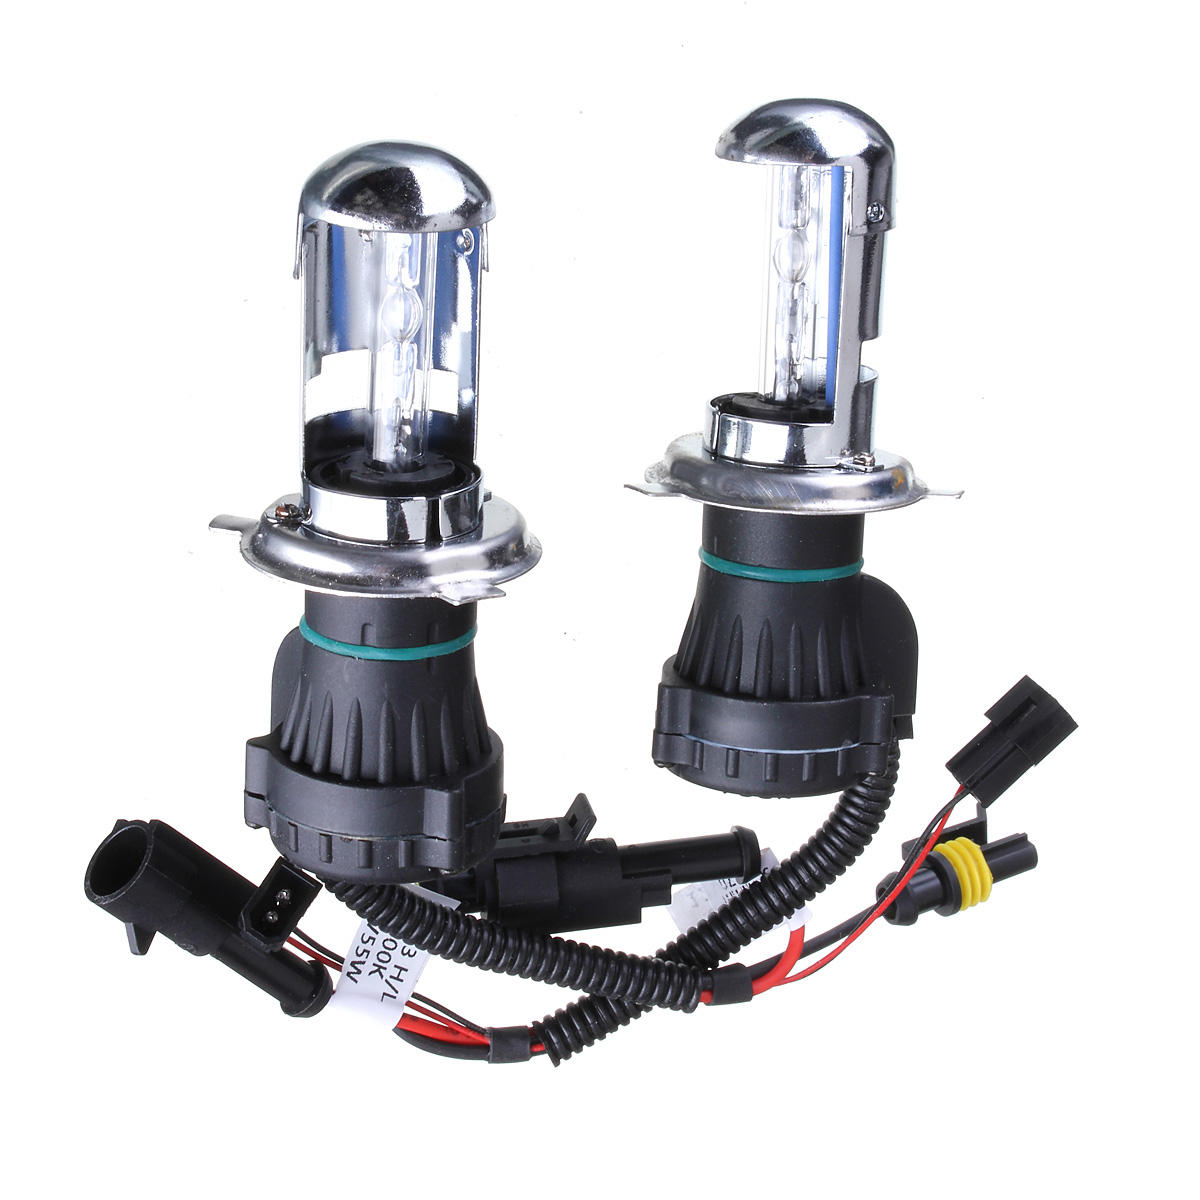 2PCS H4 55W Car HID Xenon Headlights Hi/Lo Bi Beam Headlamp Bulb 3000K-15000K